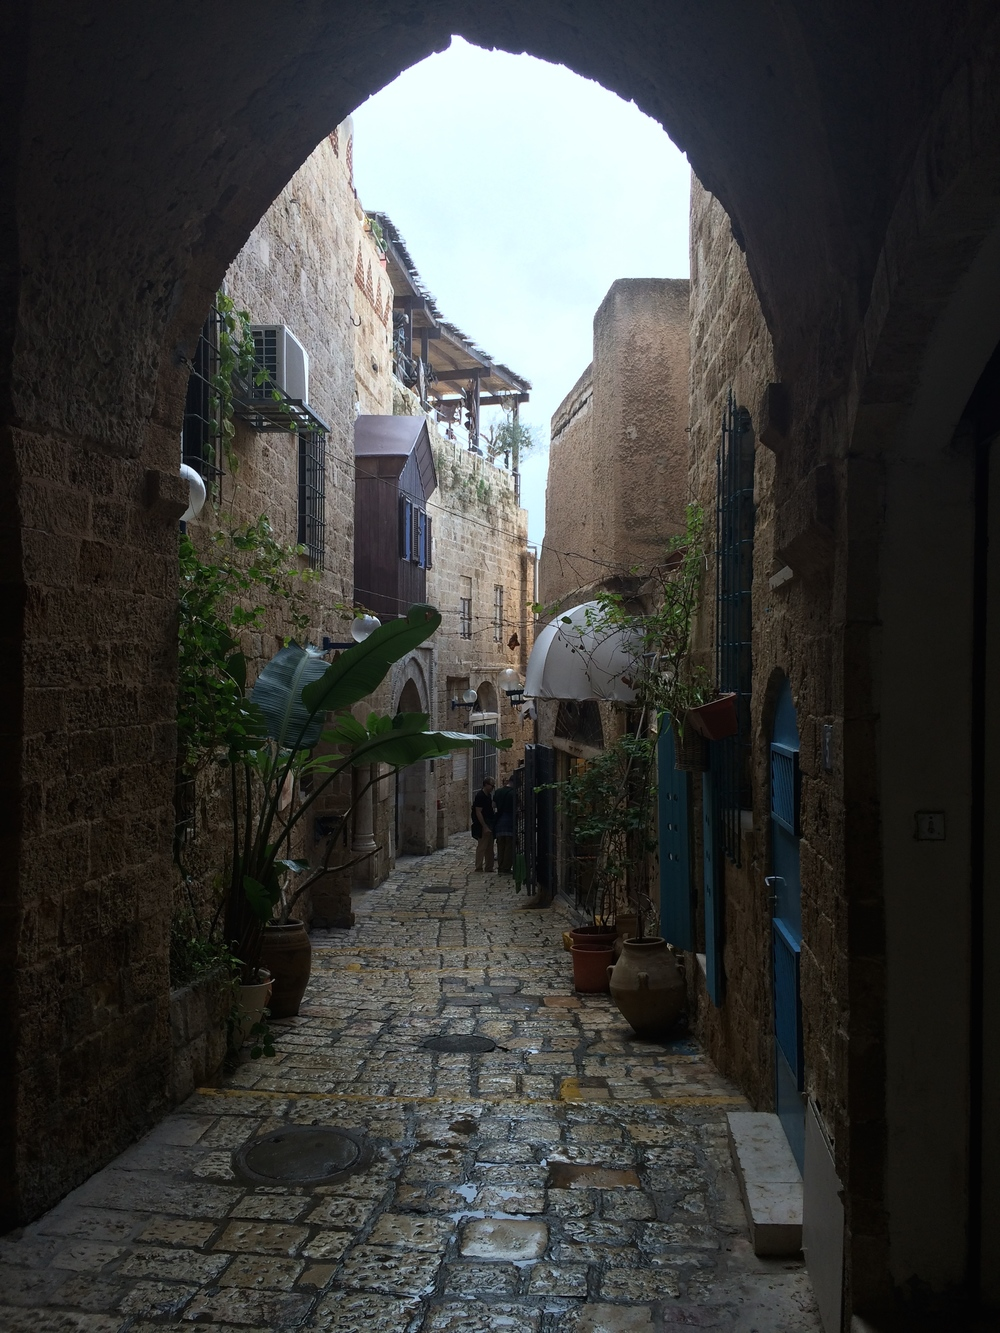 The old city streets of Jaffa in Tel Aviv.